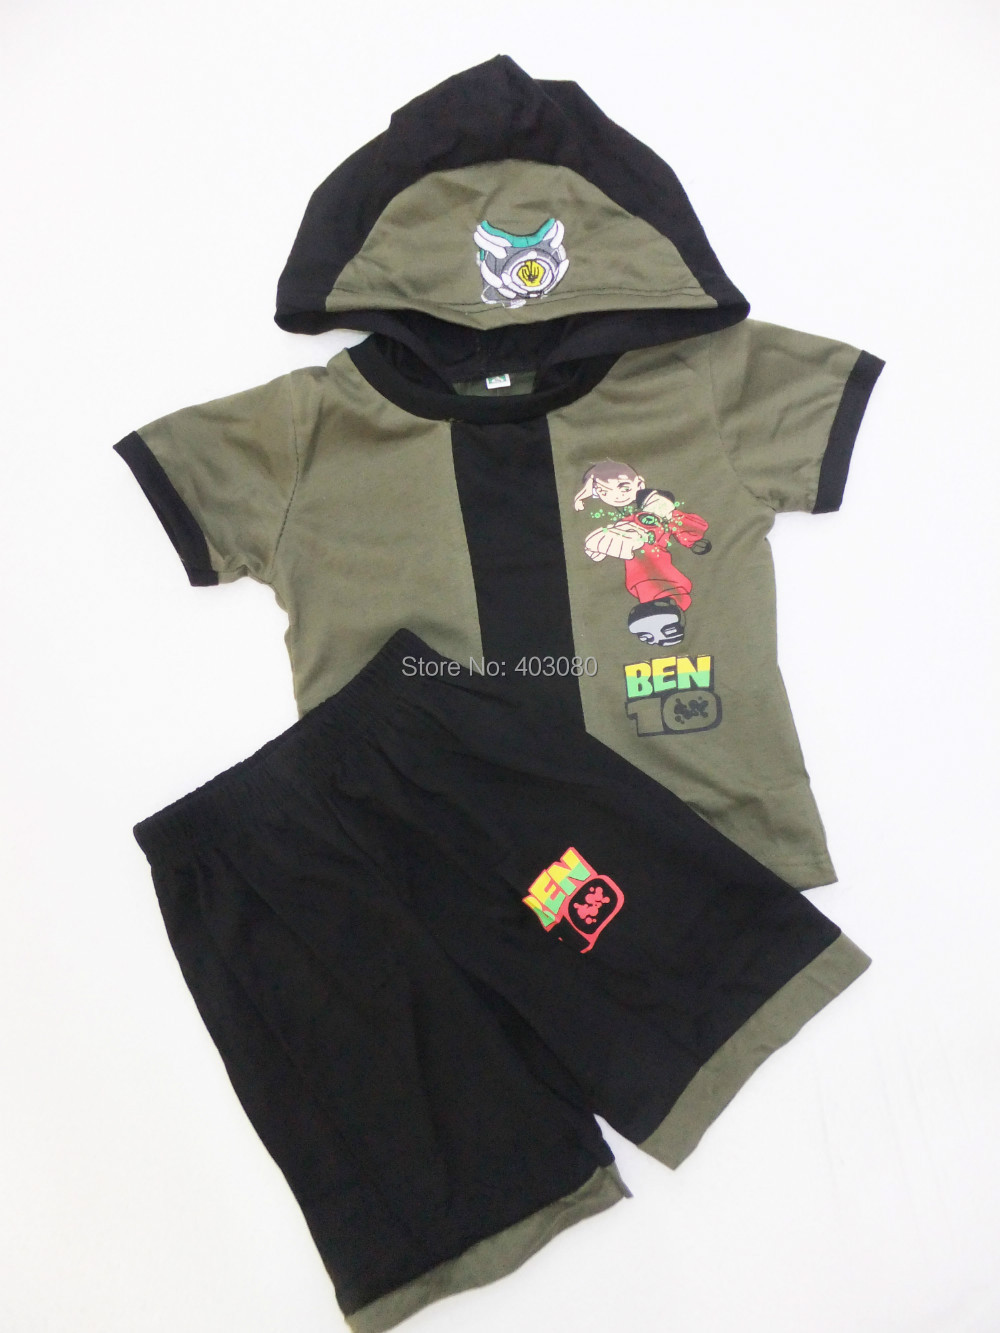 Army green short sleeves cotton BEN-10 Cosplay Baby kid clothes 2 suit clothing Role-playing Boy leisure wear